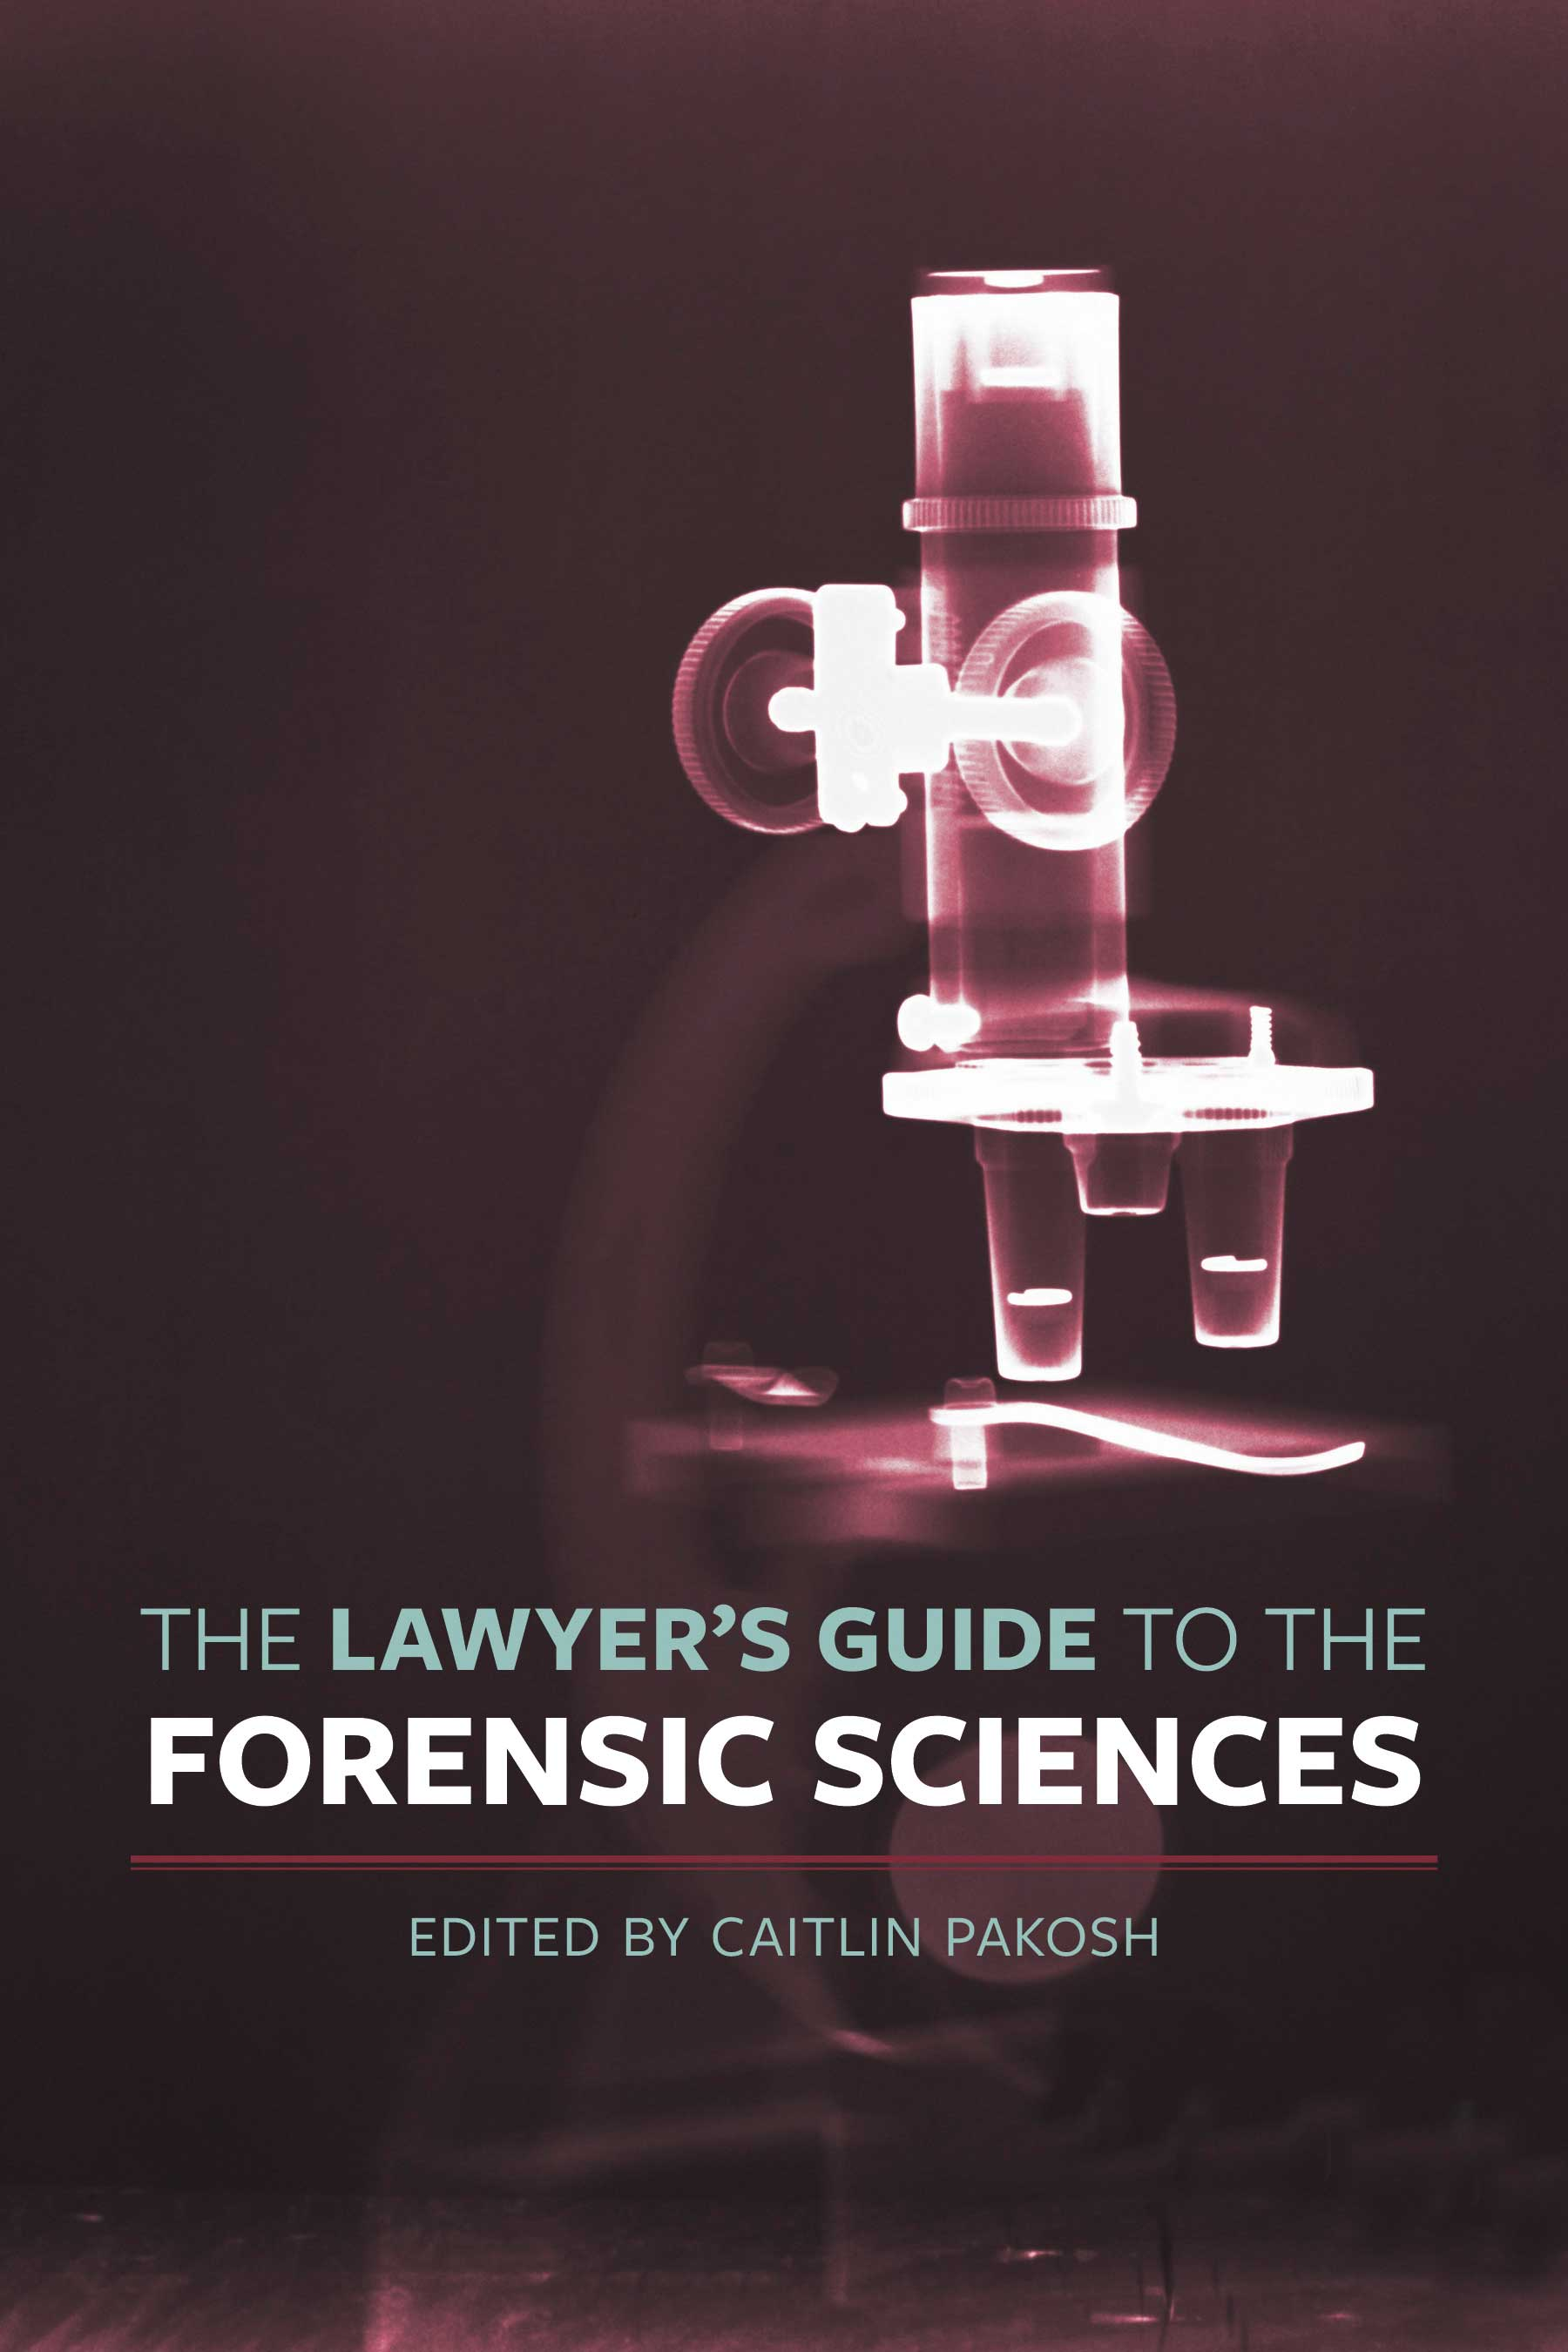 Lawyer's Guide to the Forensic Sciences